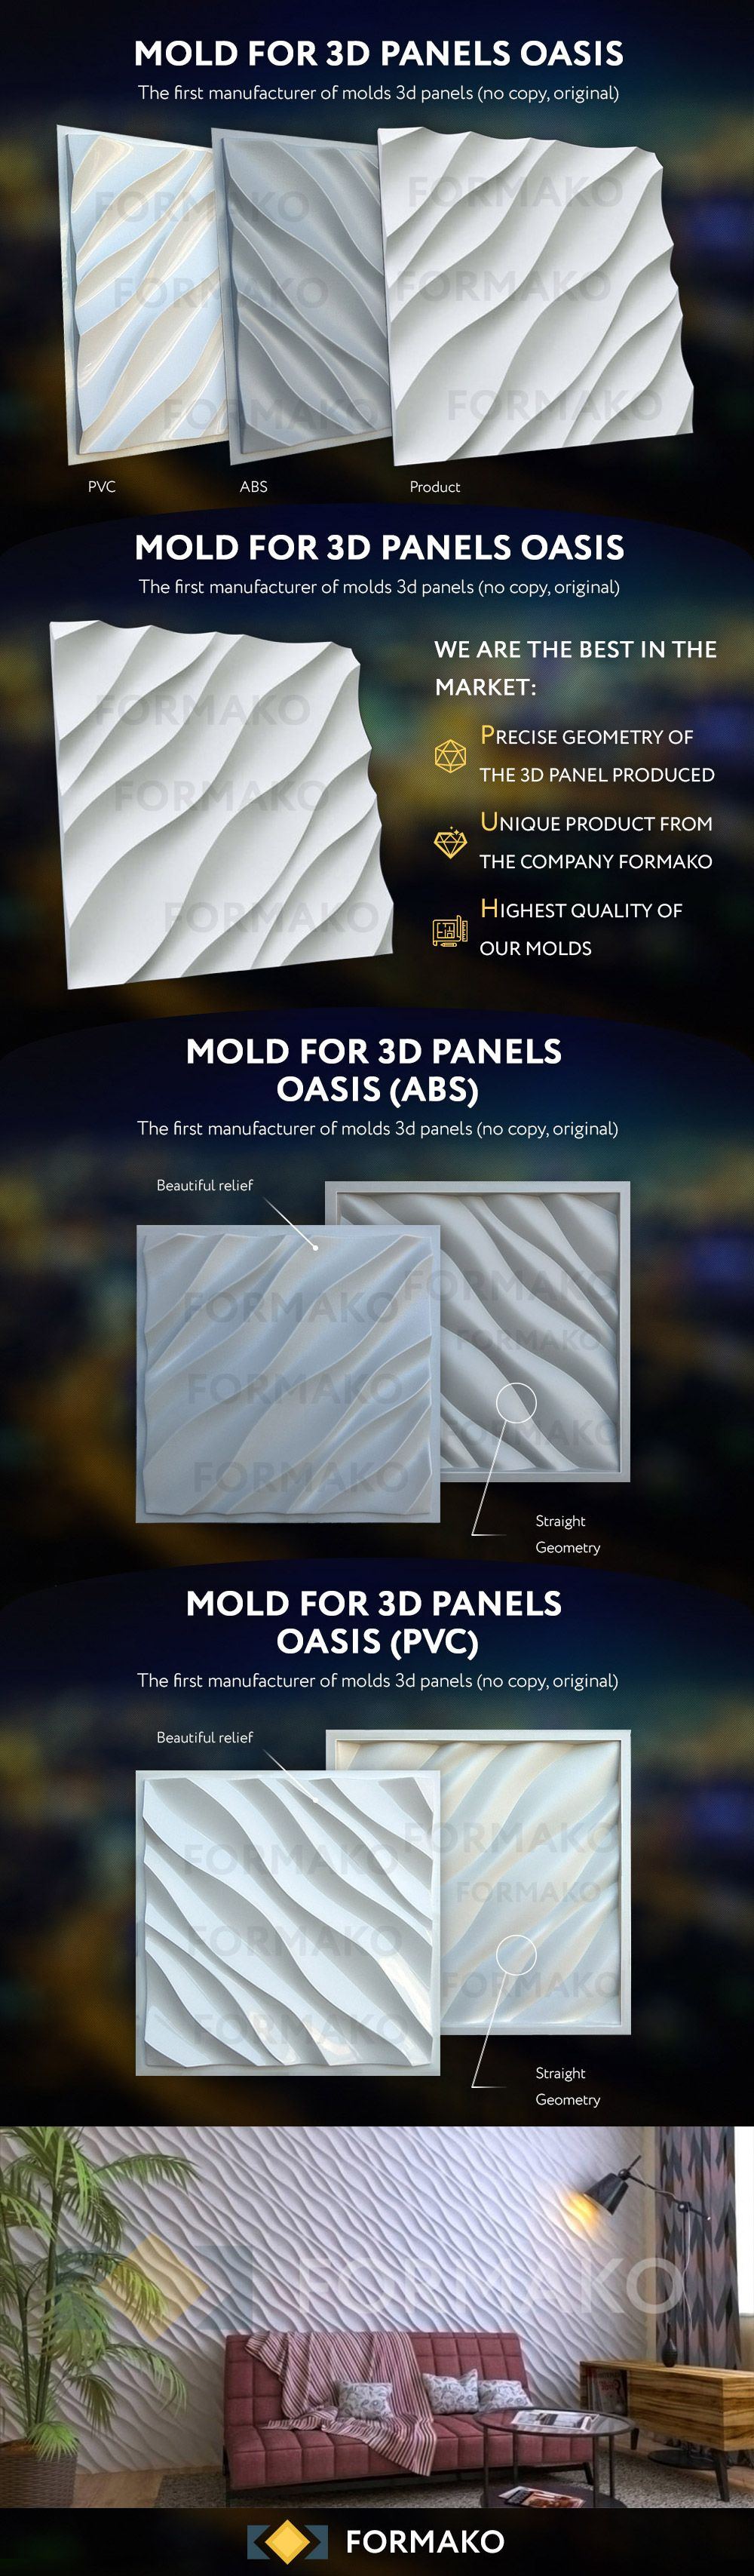 Mold For 3d Panels Oasis The First Manufacturer Of Molds 3d Panels No Copy Original We Are The Best In The Market 1 Precise Geometry Of The 3d Panel Produ